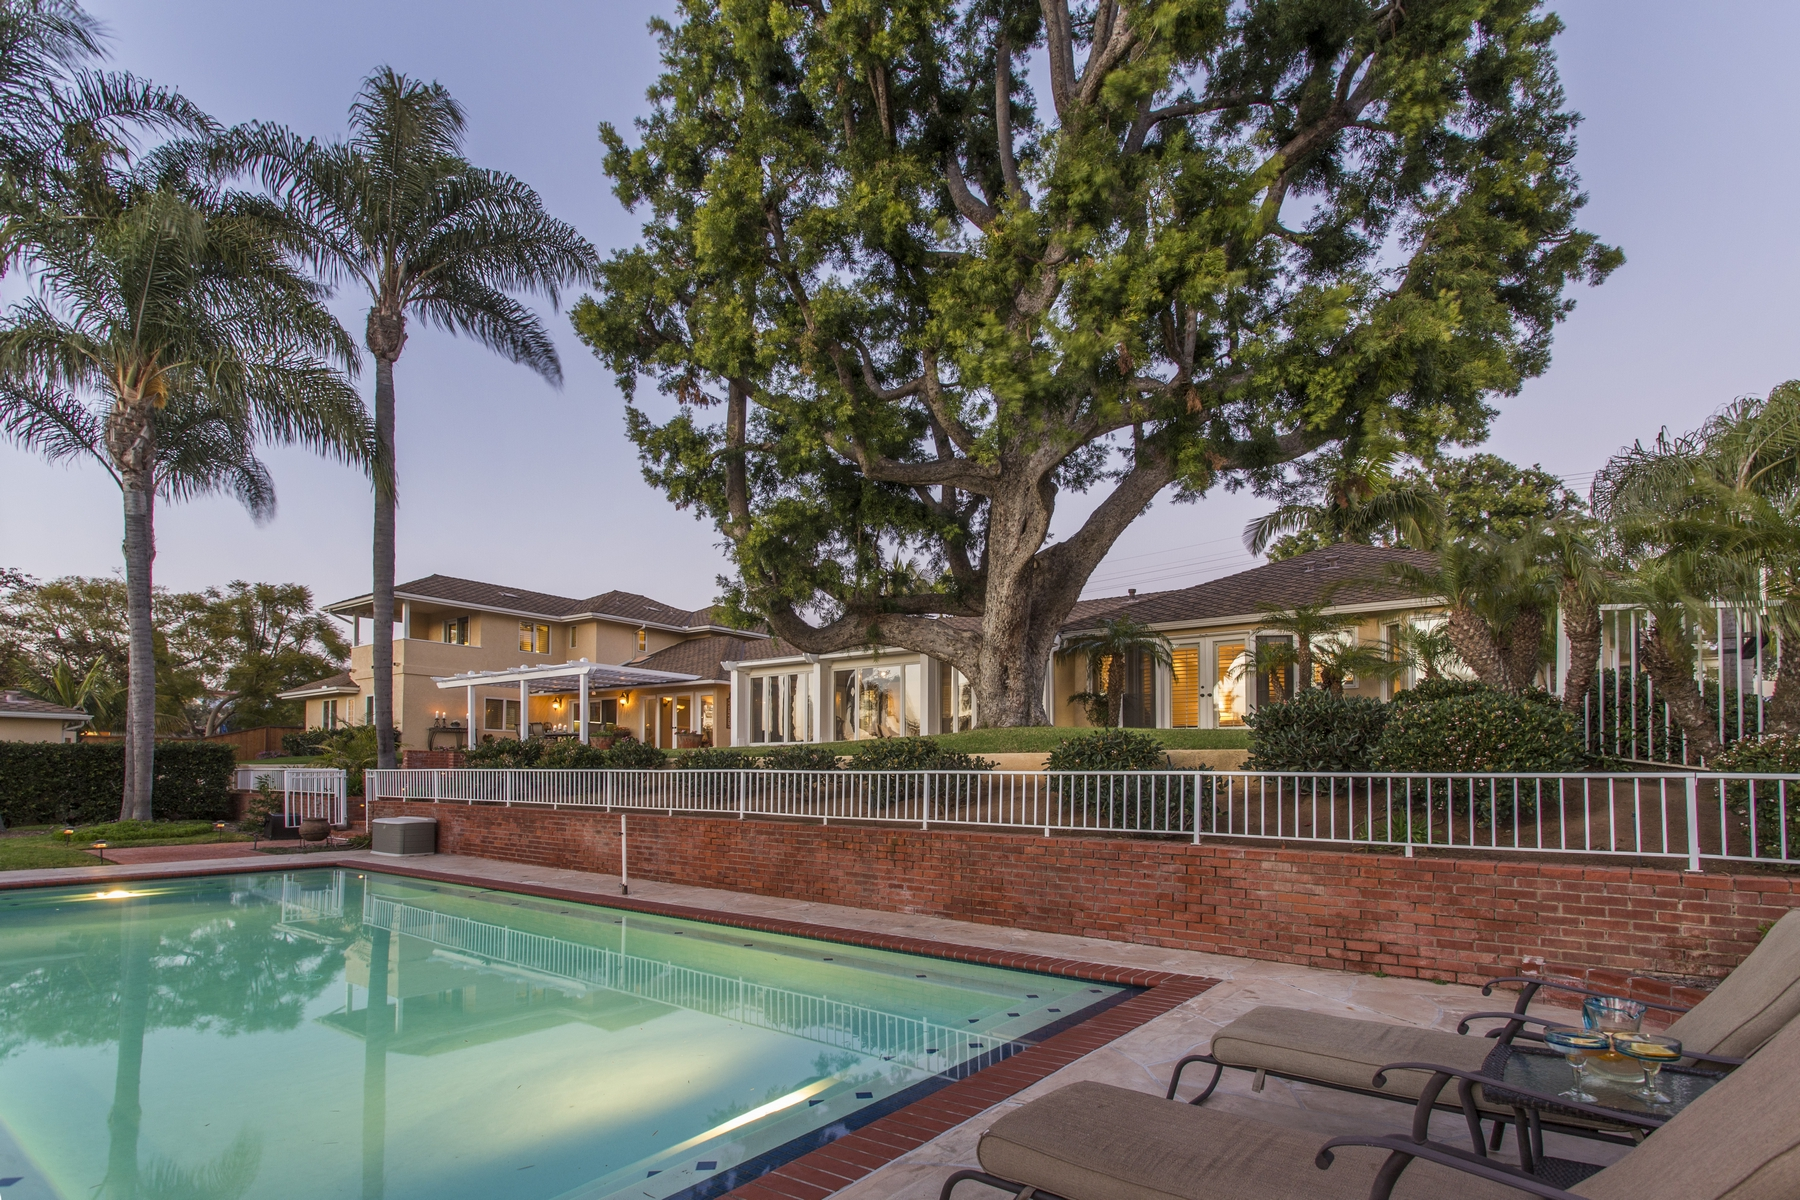 Single Family Home for Sale at 3437 Highland Carlsbad, California, 92008 United States